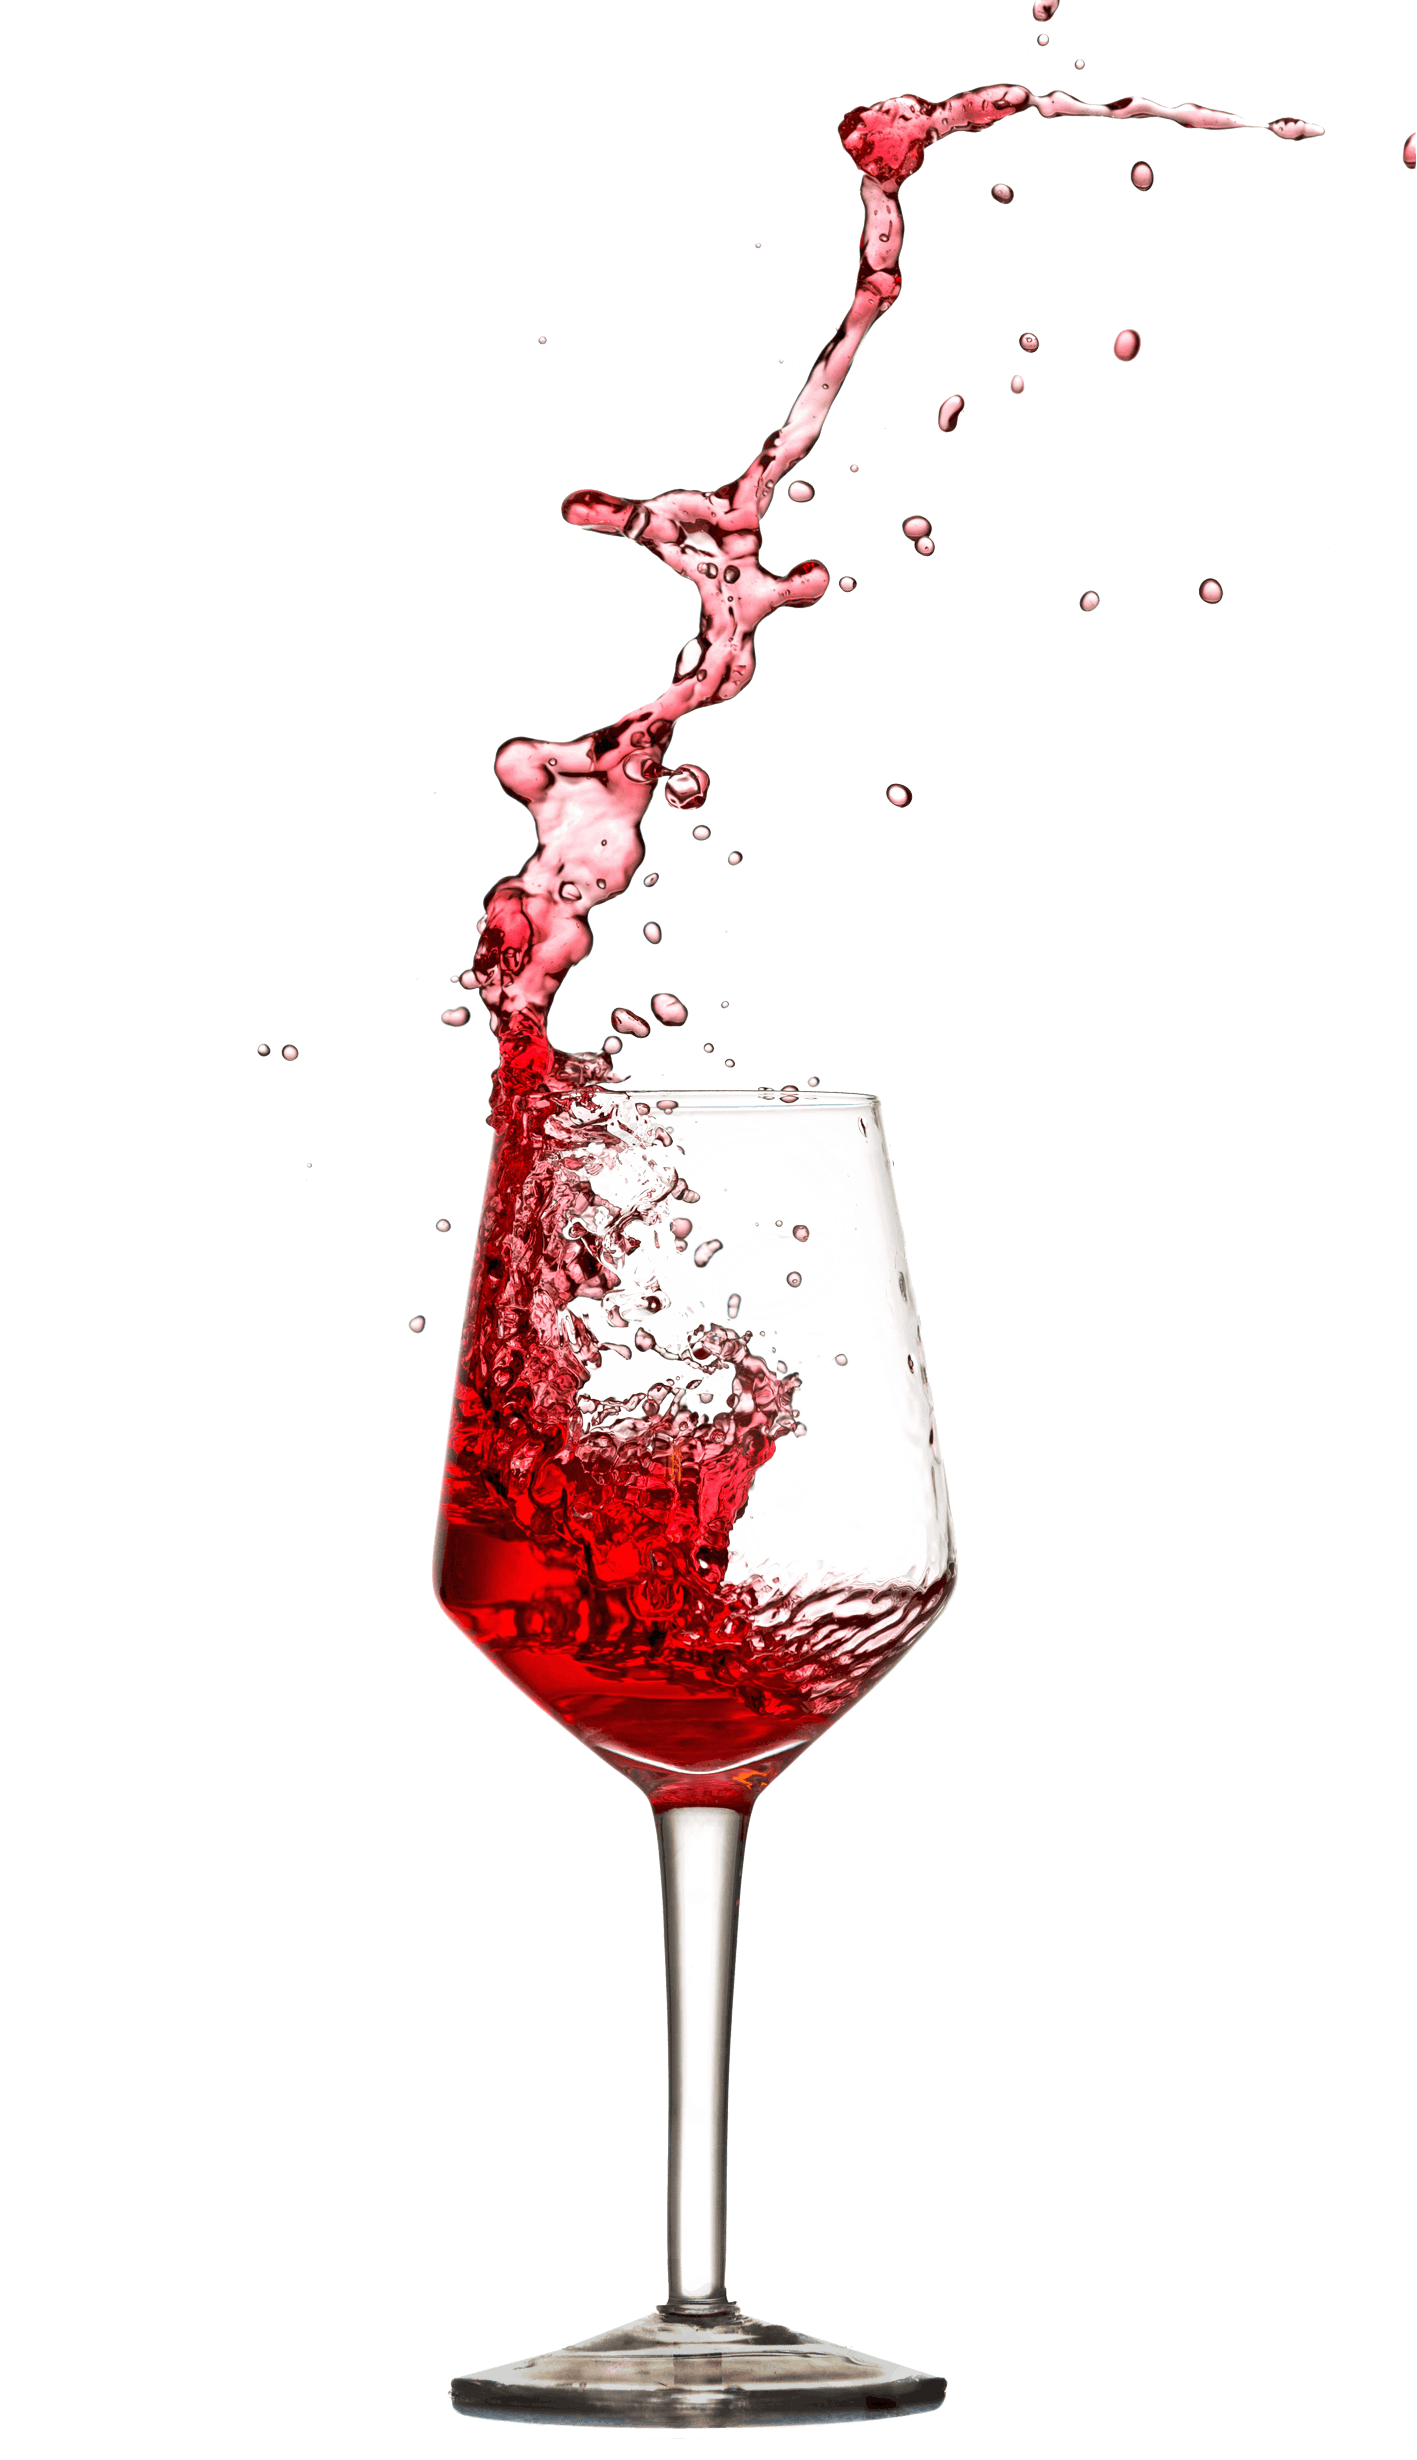 Red Wine Poured in Wine Glass